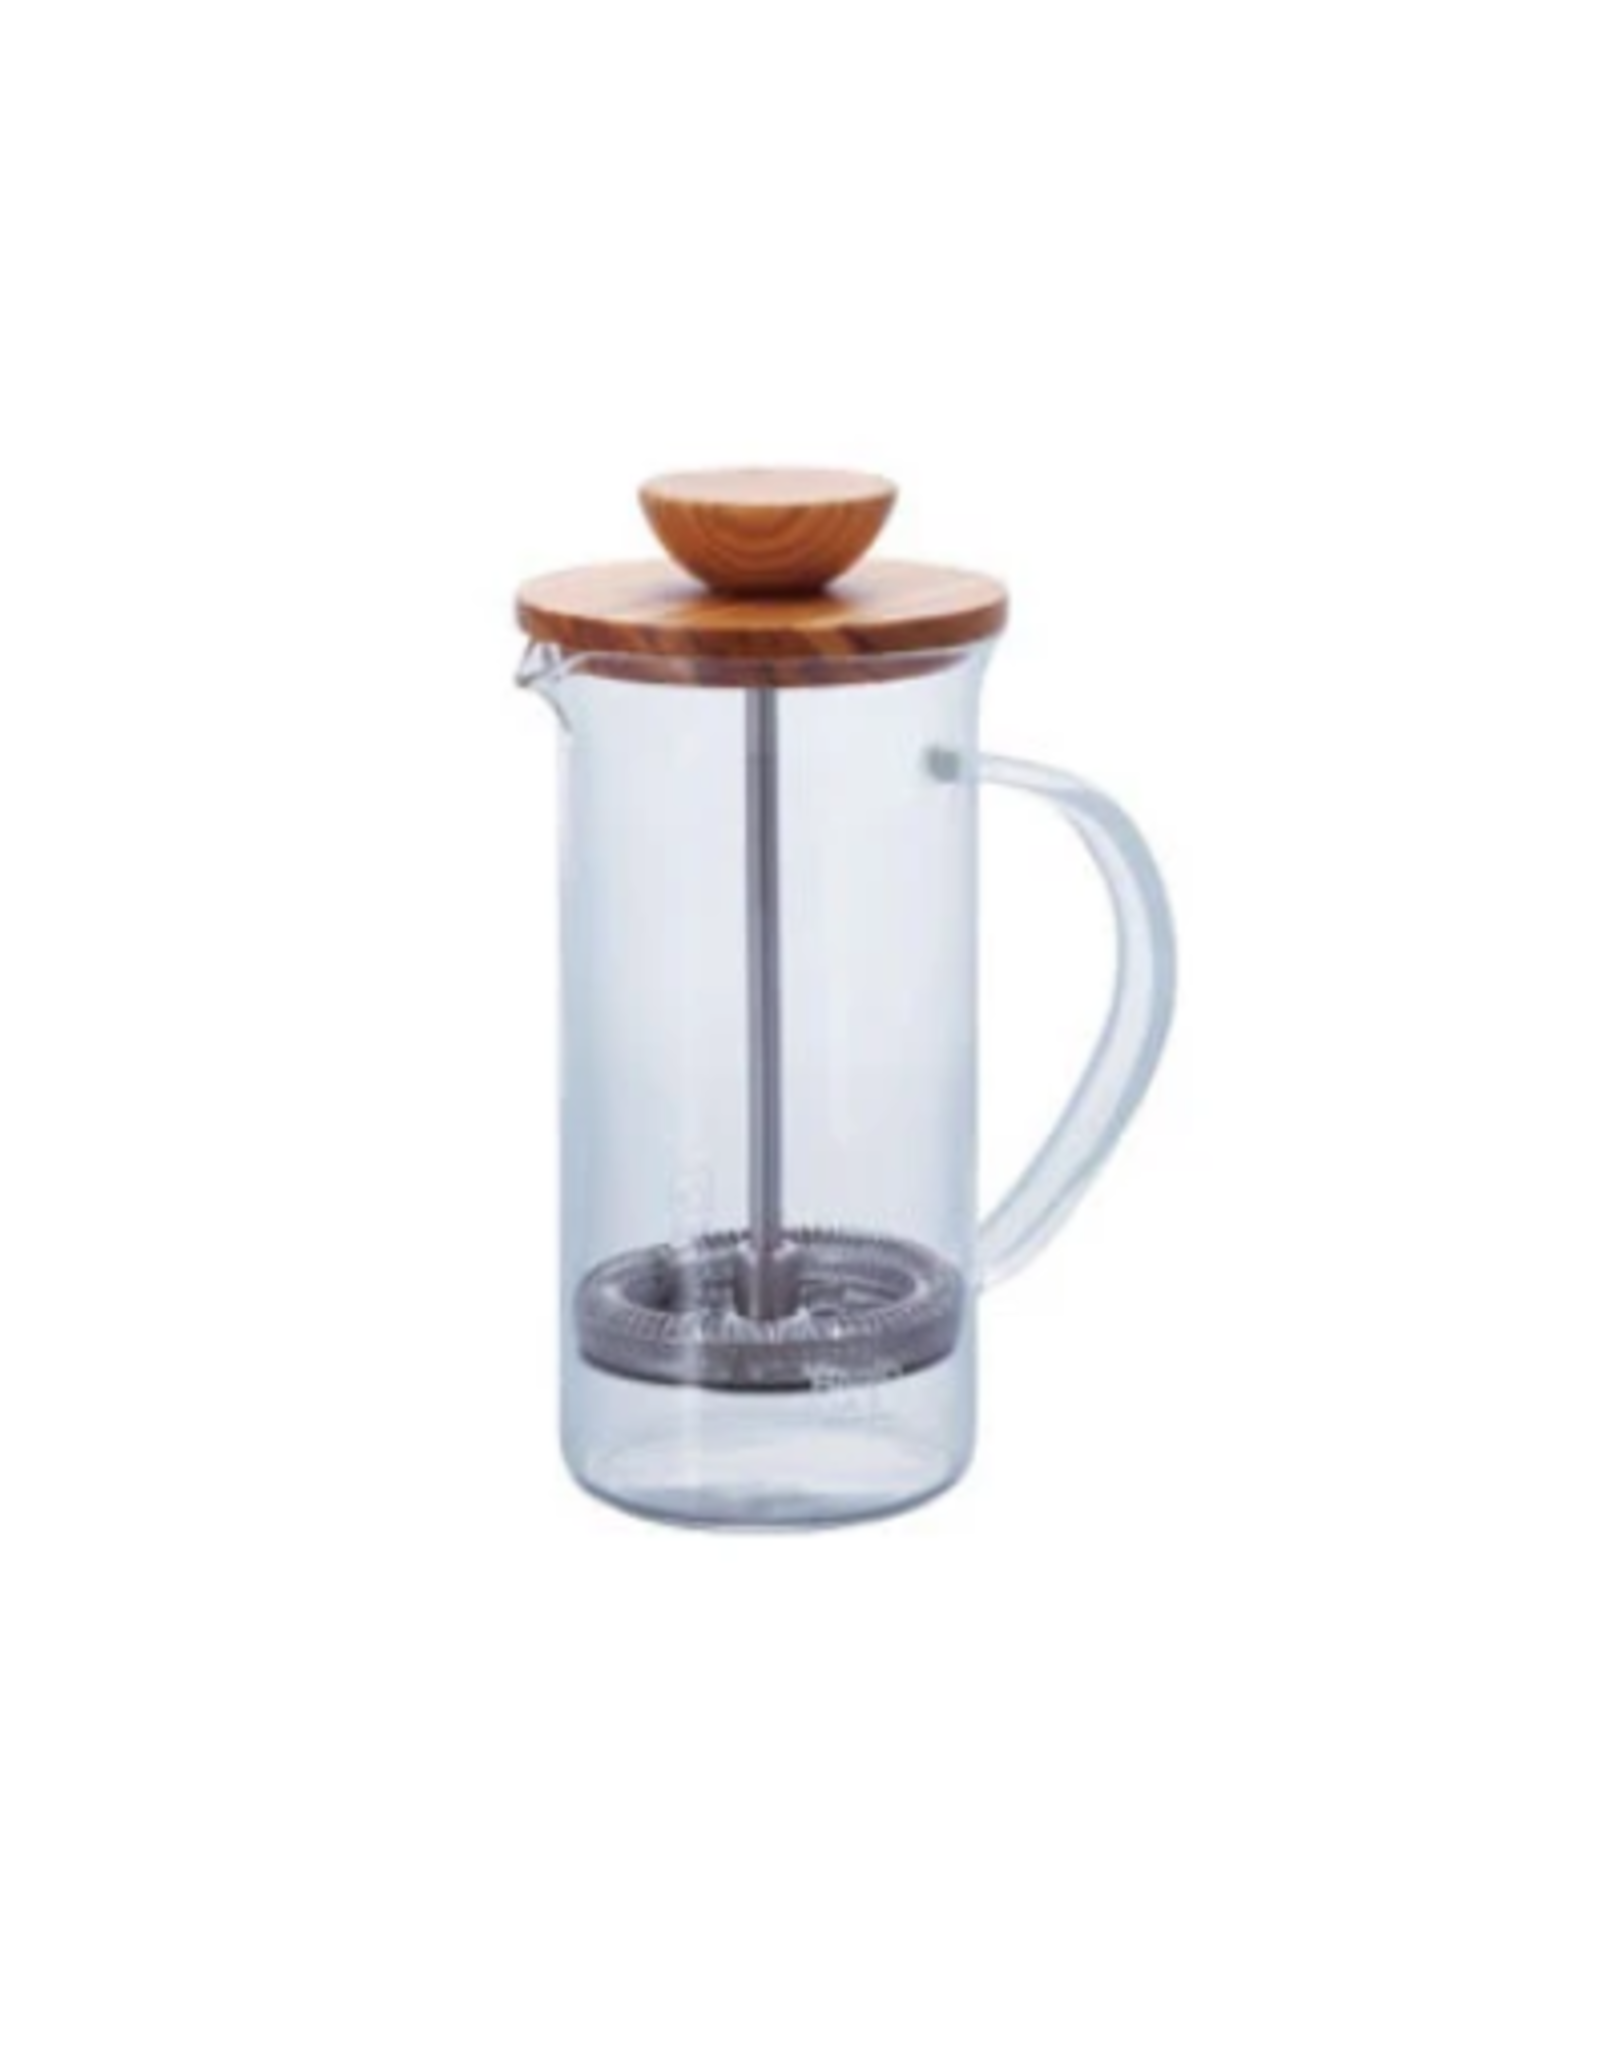 Hario Hario Olive Wood French Press 300ml